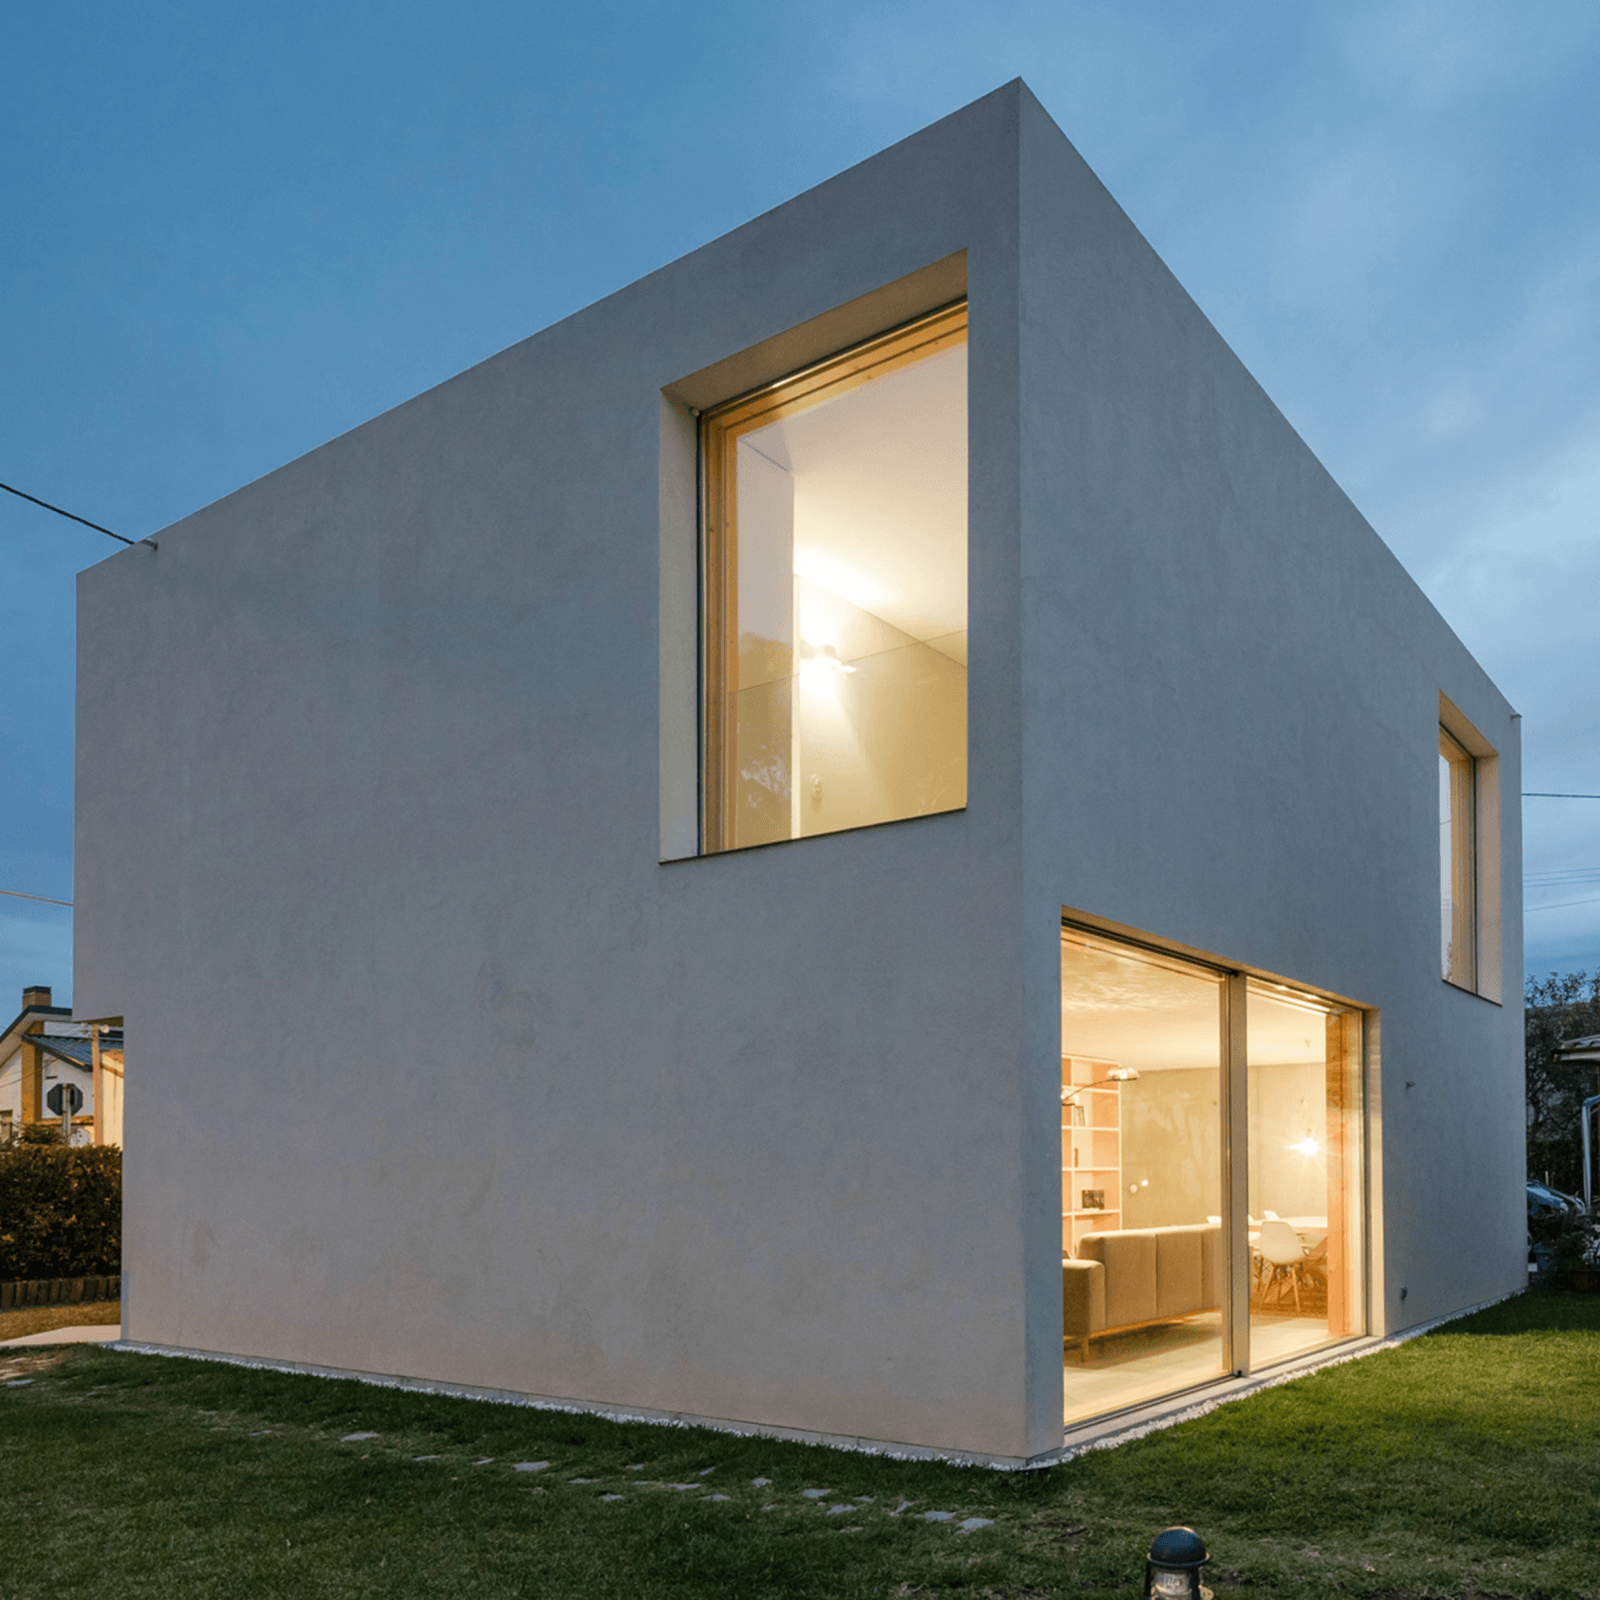 A demonstration house from an architectural program at